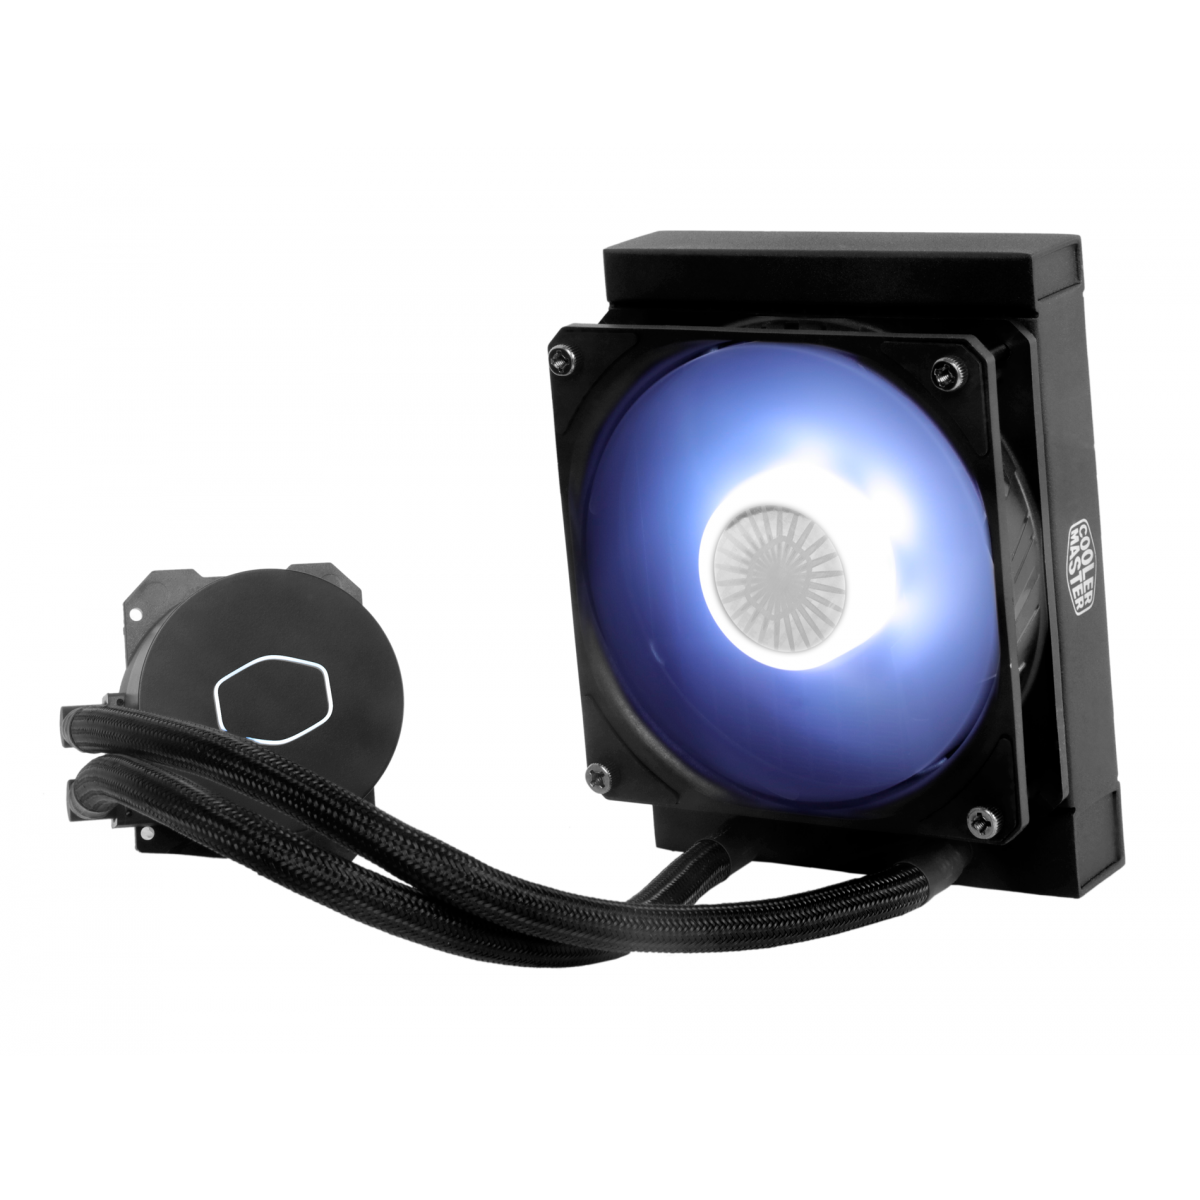 Water Cooler Cooler Master Masterliquid ML120L V2 White, 120mm, Intel-AMD, MLW-D12M-A18PW-R2